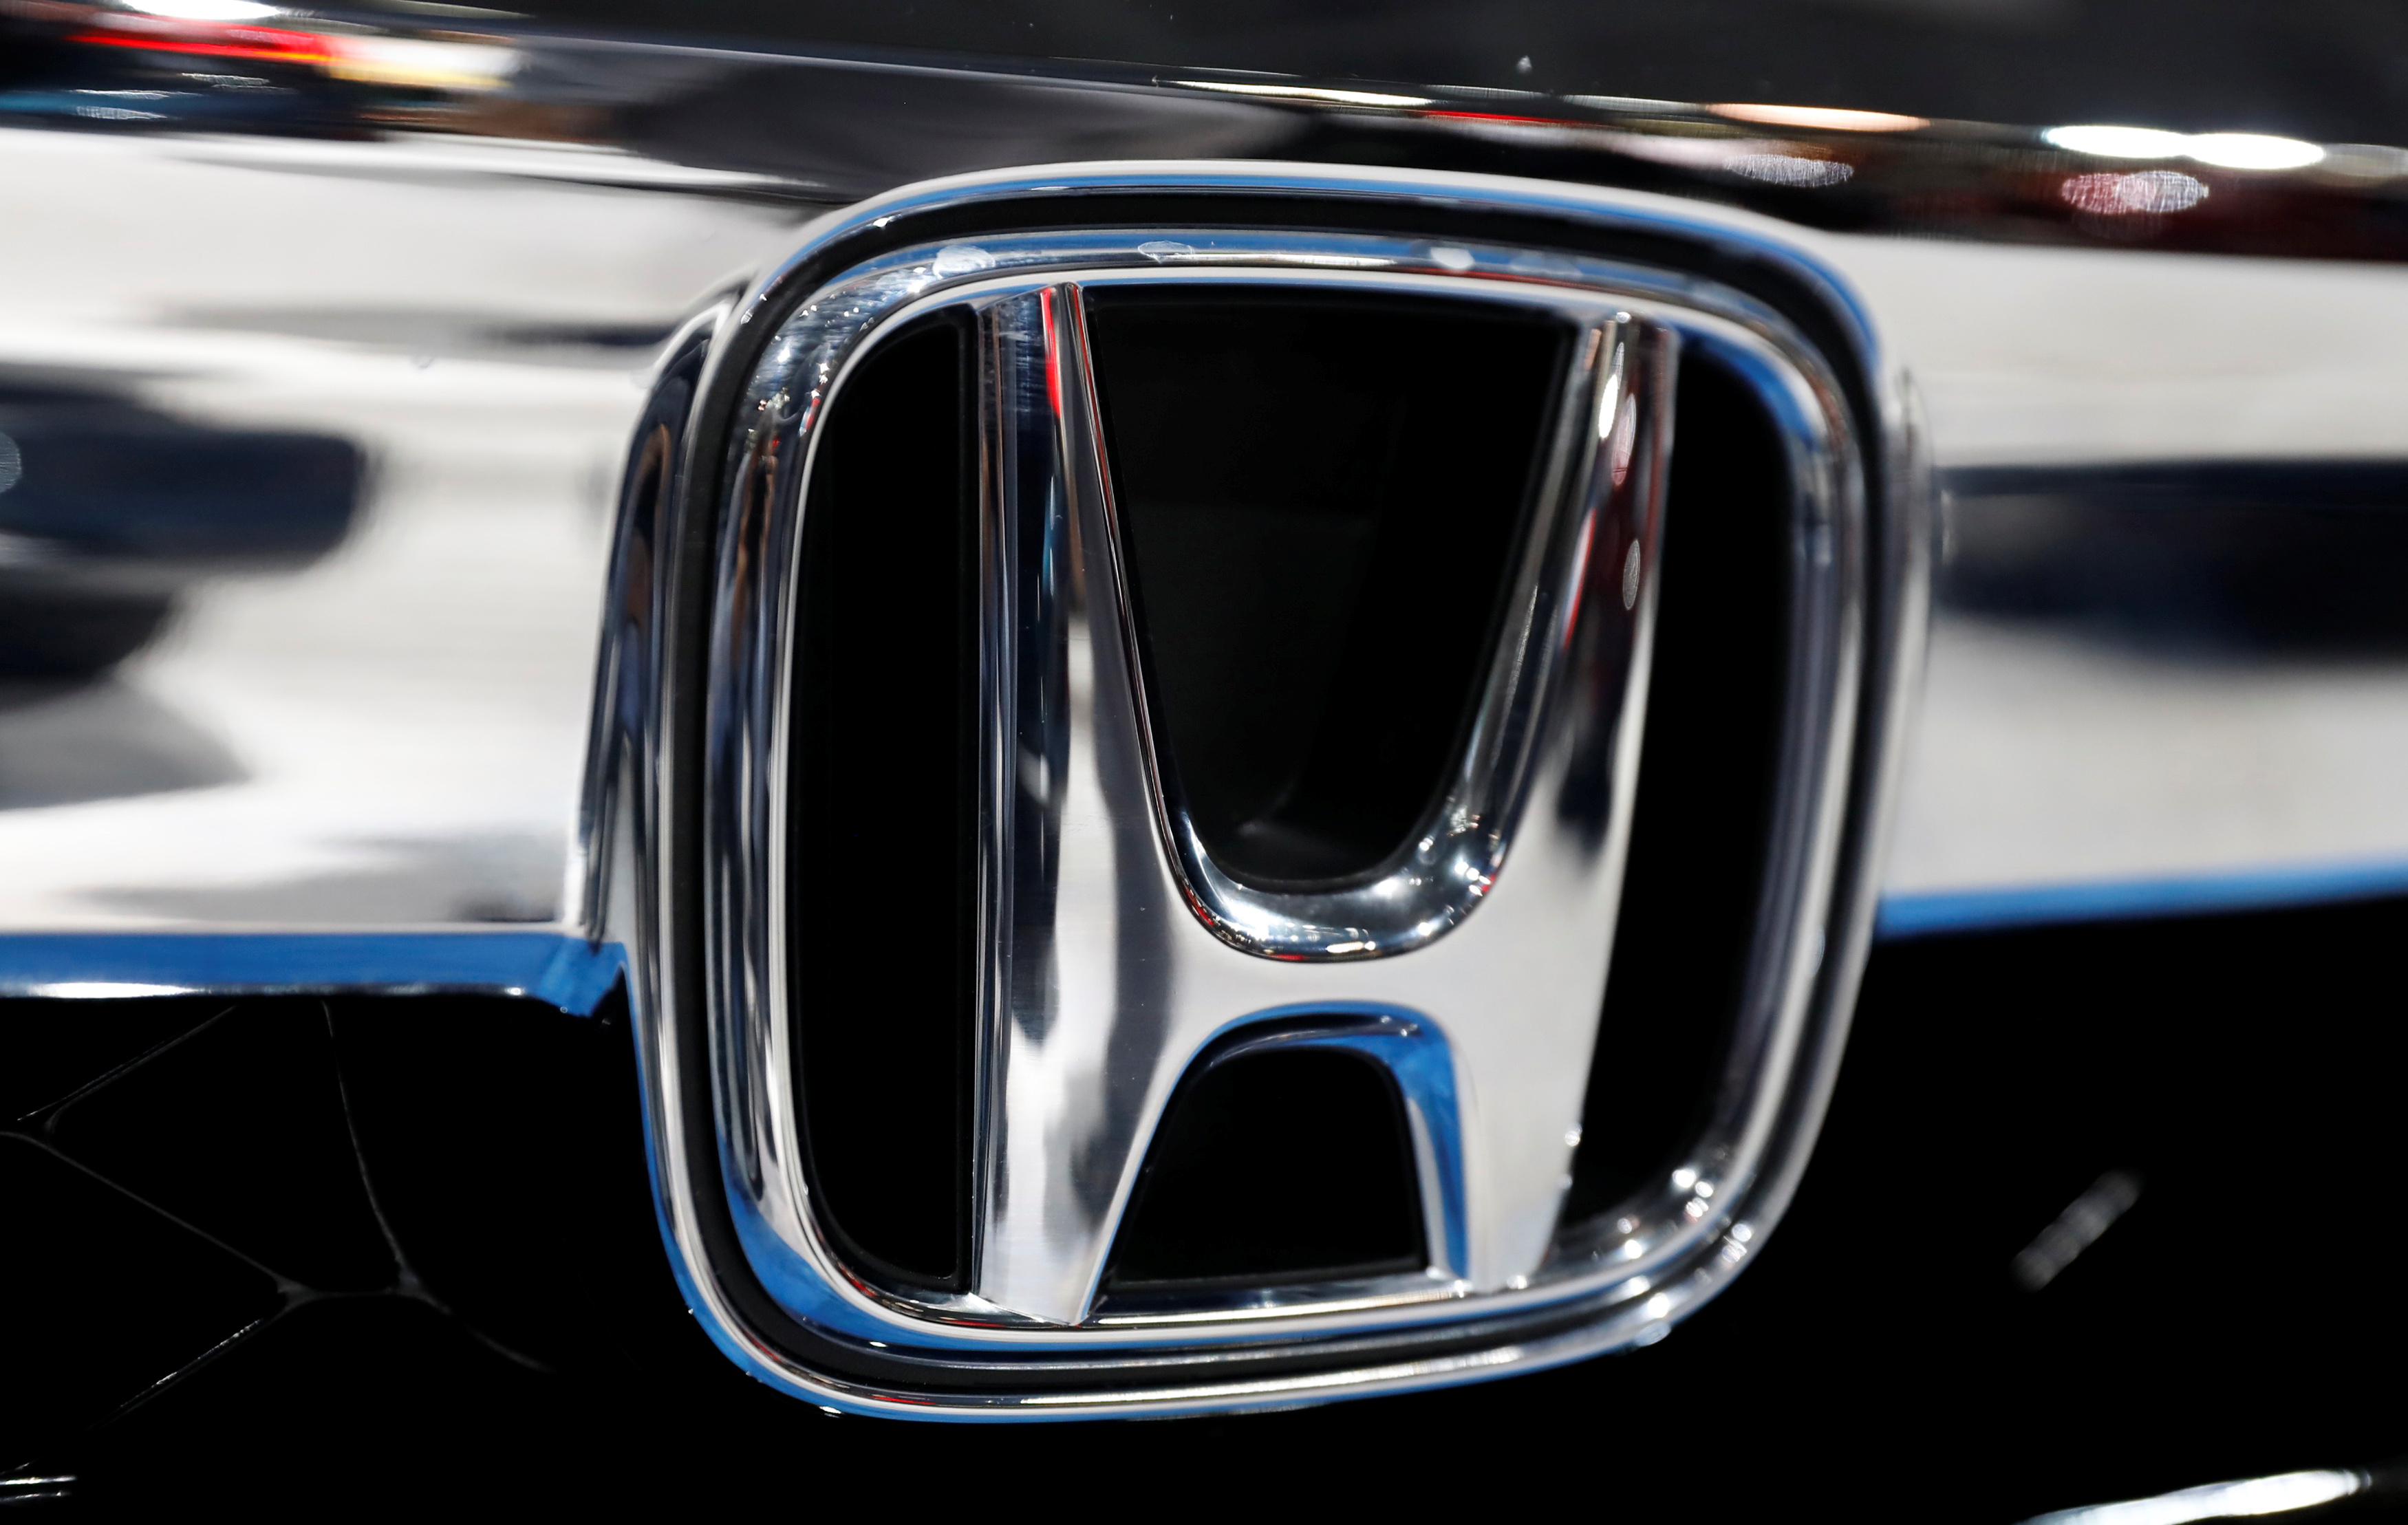 The Honda logo is seen on a Honda car displayed at the New York Auto Show in the Manhattan borough of New York City, New York, U.S., March 29, 2018. REUTERS/Shannon Stapleton/File Photo